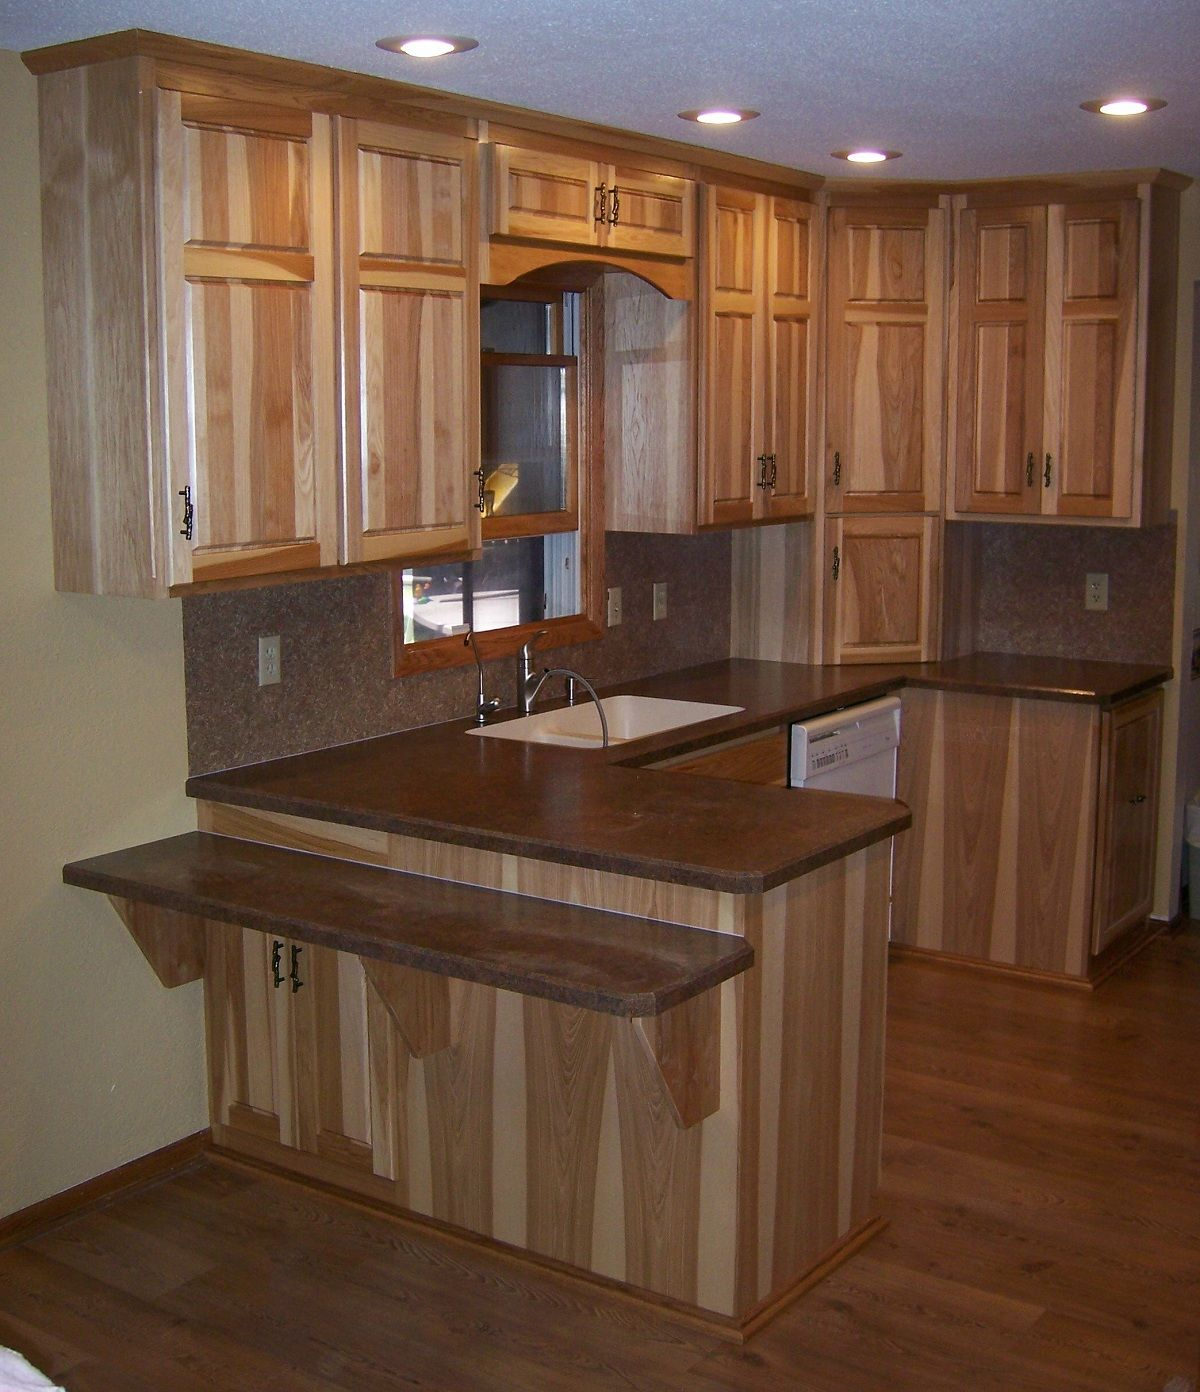 Denver Hickory Kitchen Cabinets Assembled 43hickory 43kitchen 43cabinets Download Hickory